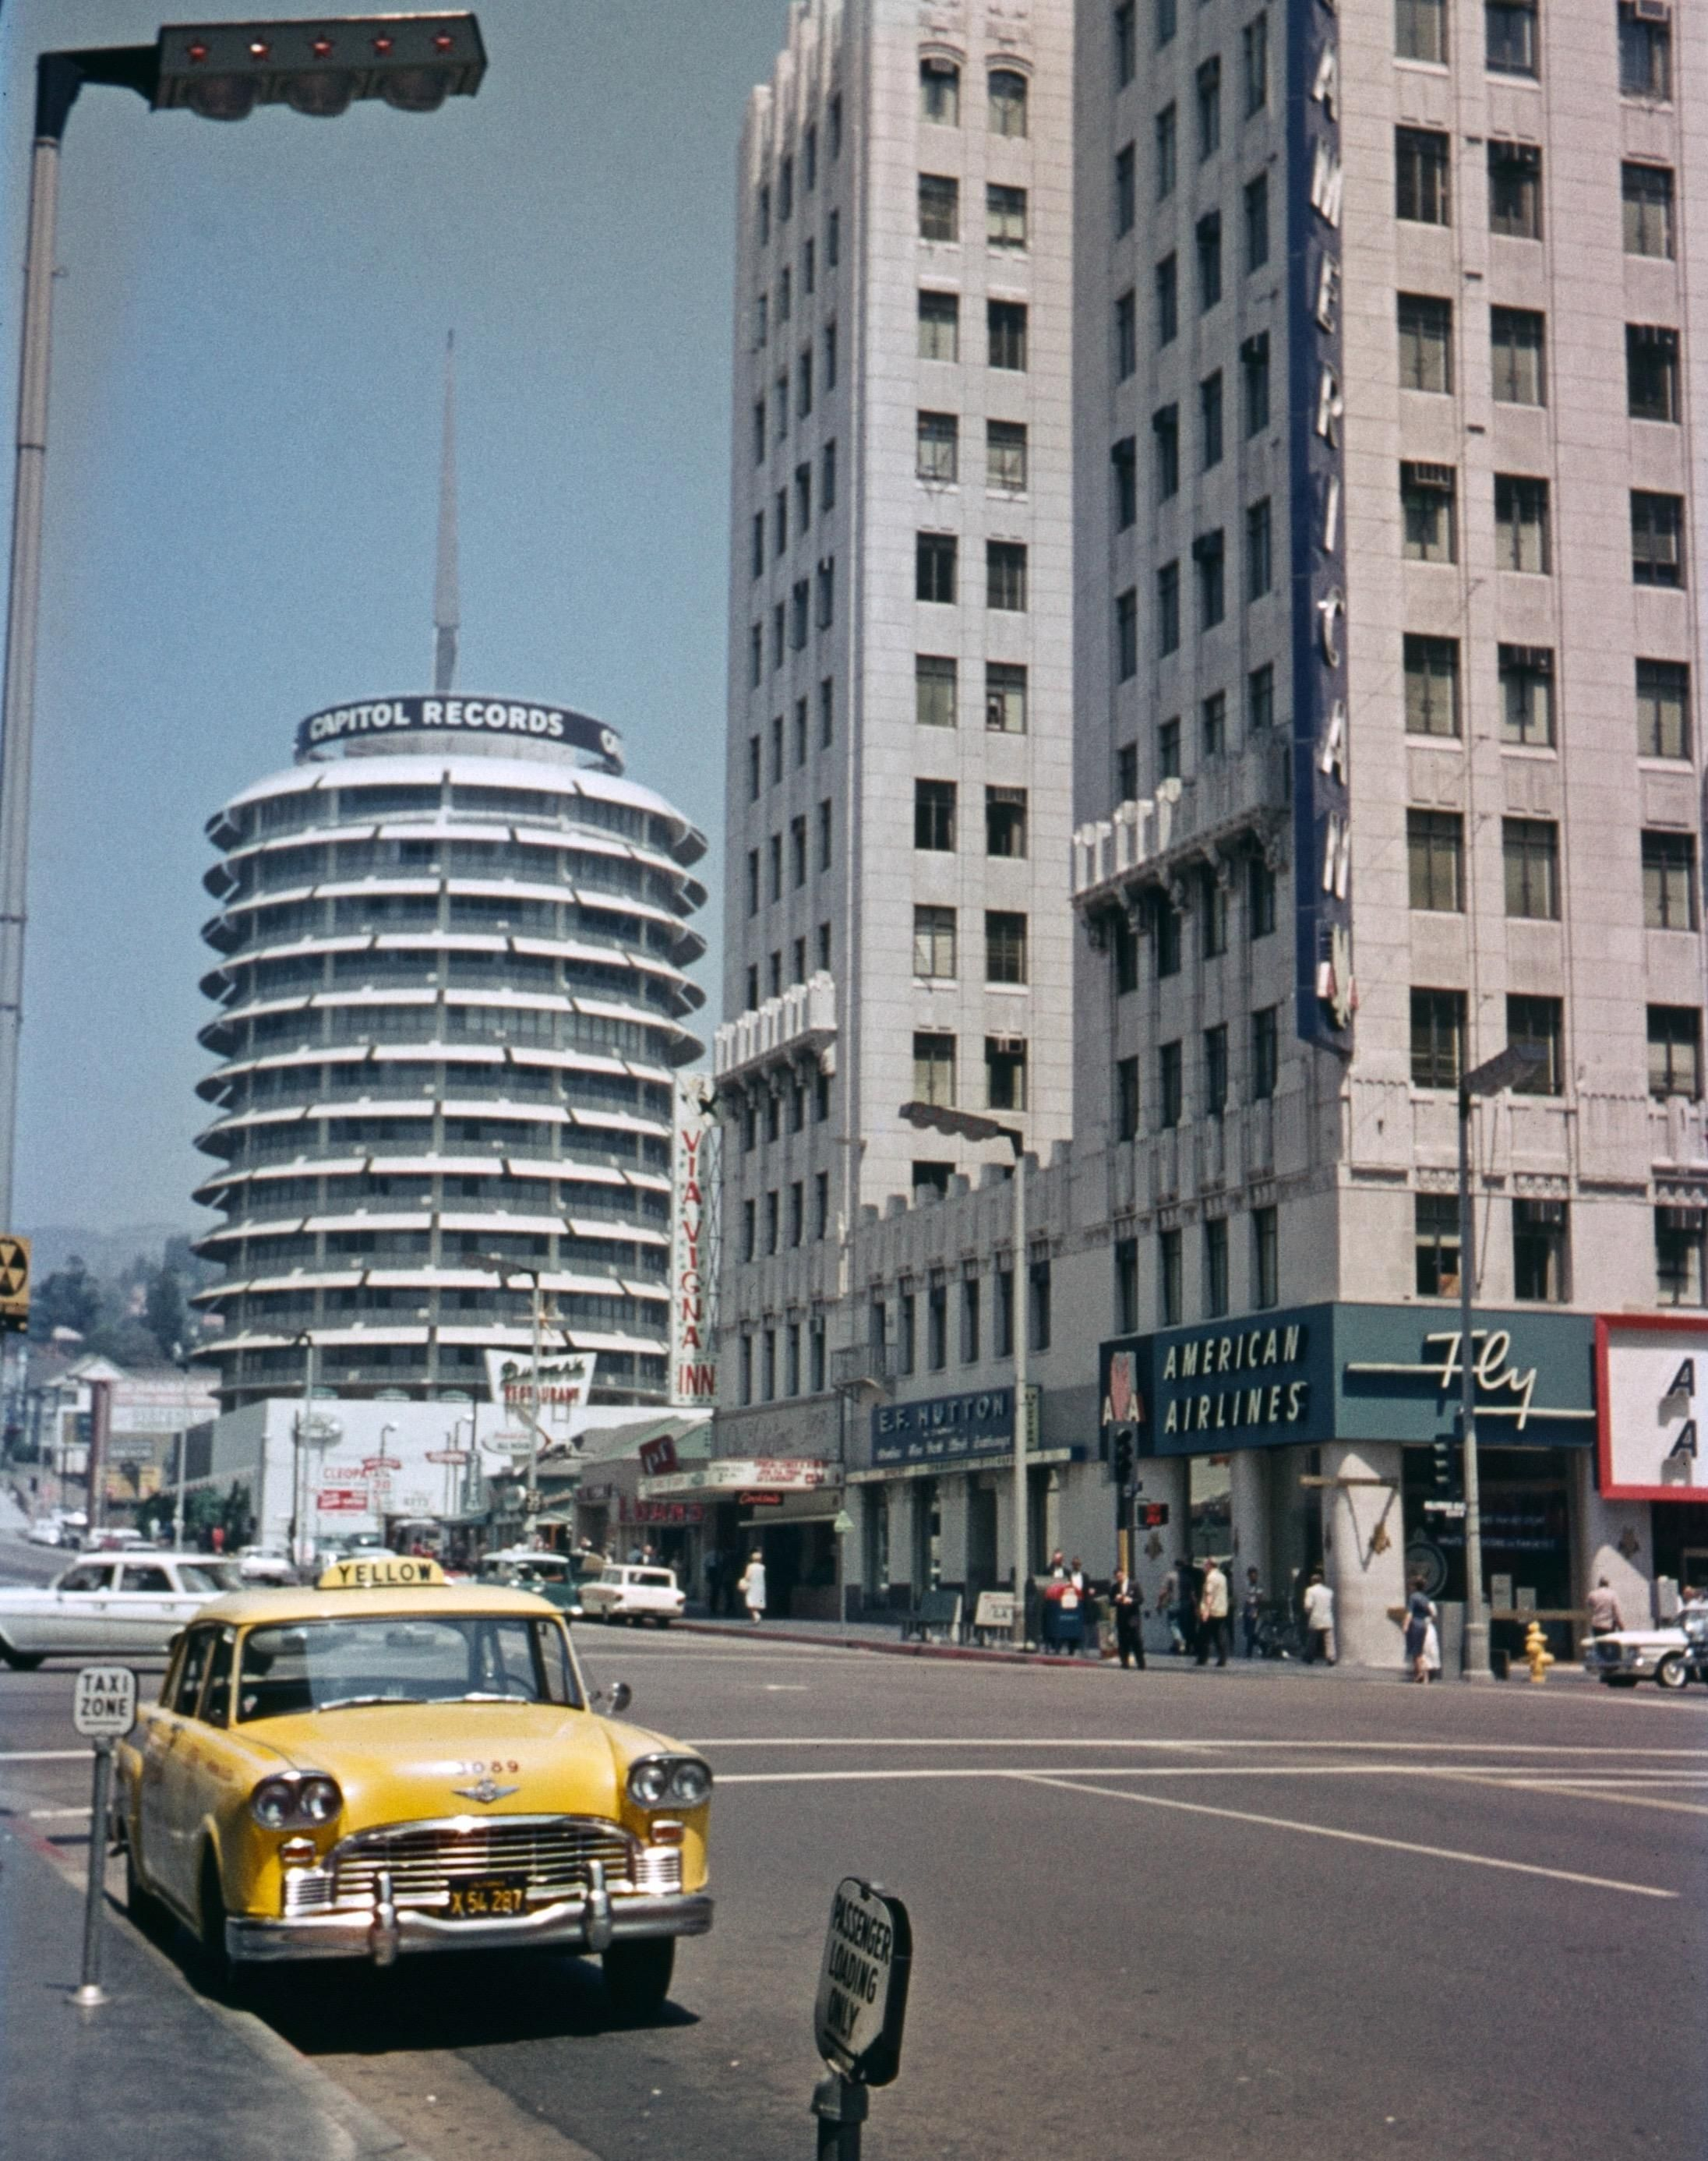 Capitol Records Tower Hollywood And Vine Los Angeles 1963 2773 X 2192 In 2020 Capitol Records Hollywood Street Los Angeles